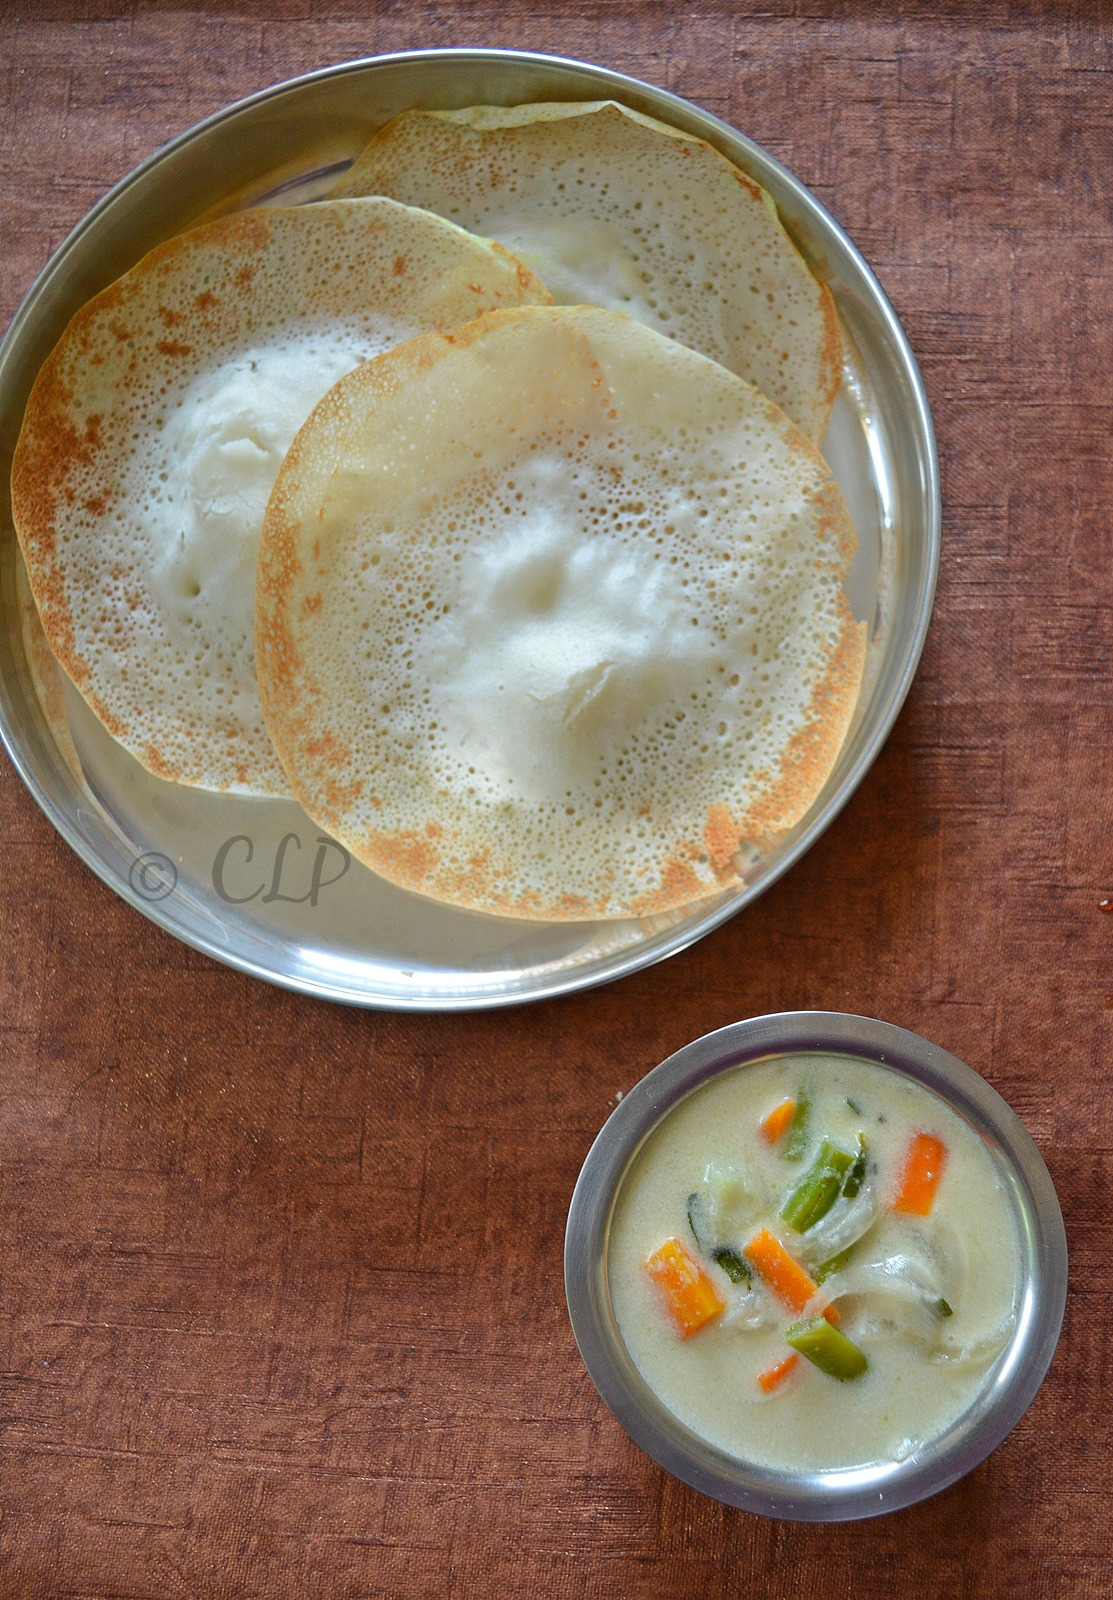 Coconut milk vegetable stew for appam